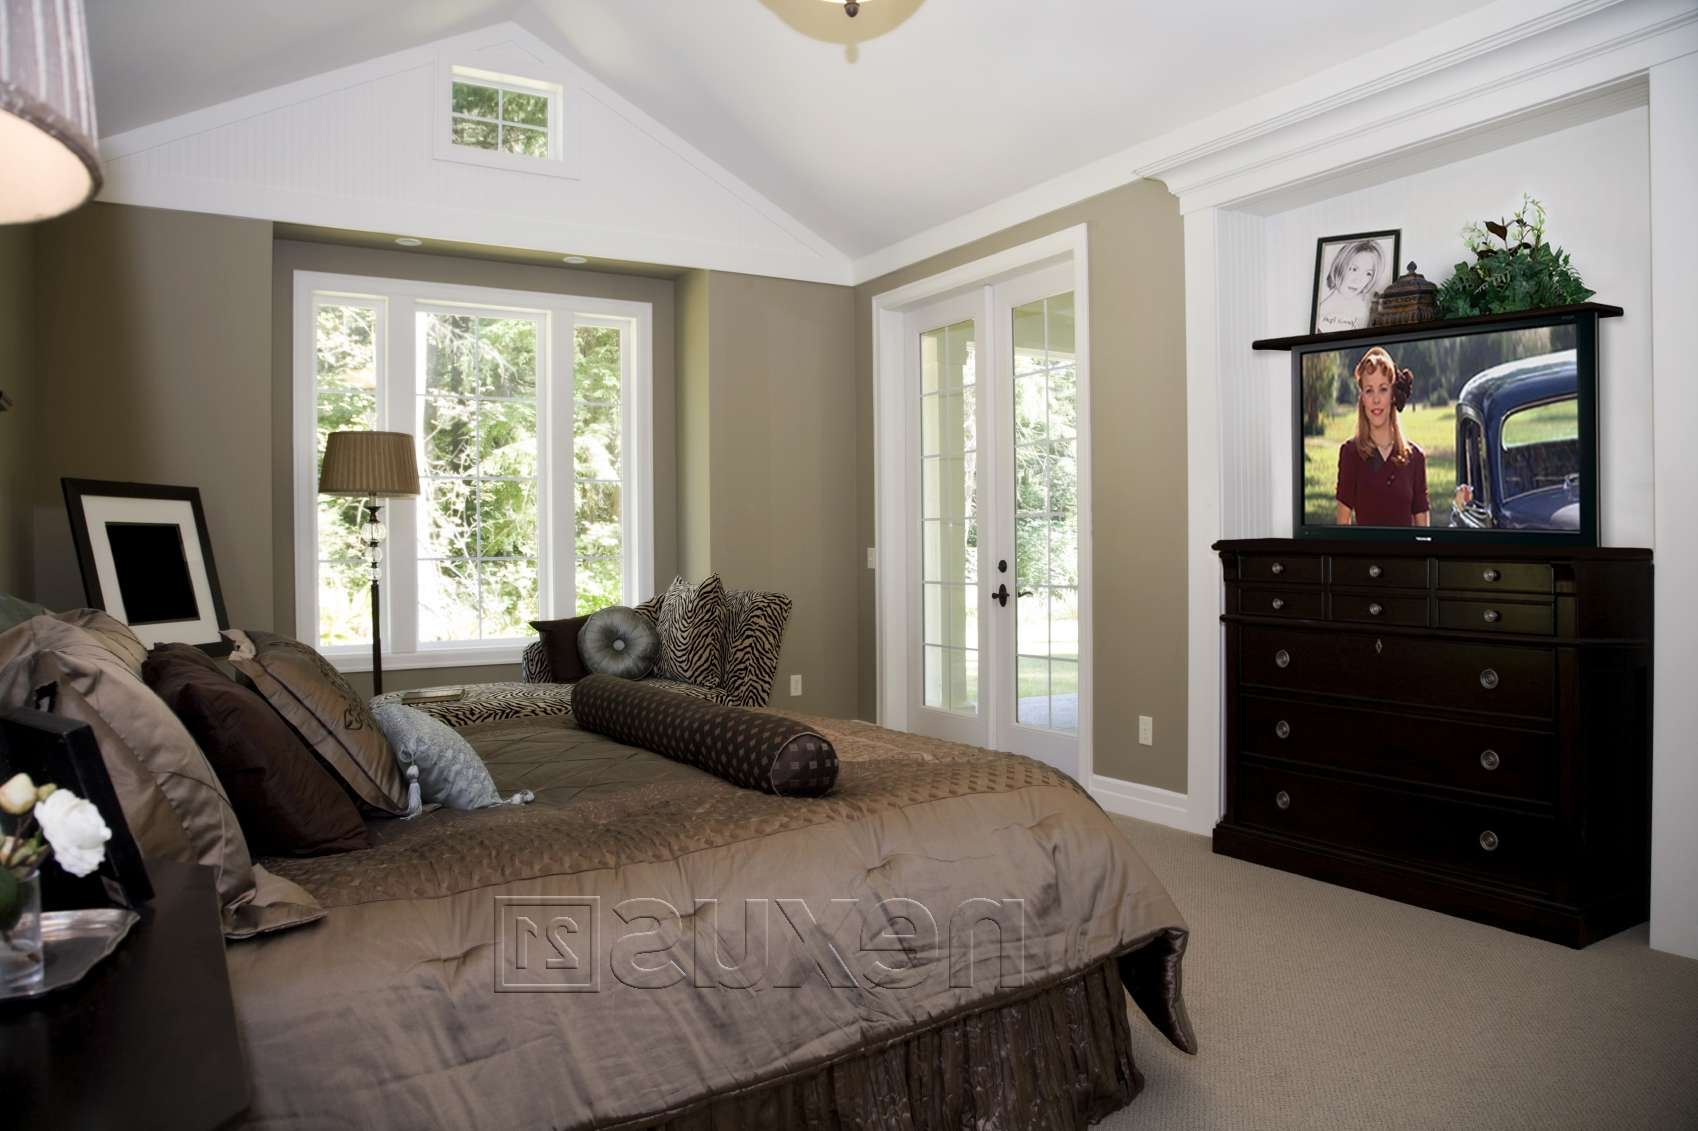 Bedroom Tv Stand Dresser Combo | Johnfante Dressers Pertaining To Dresser And Tv Stands Combination (View 2 of 15)